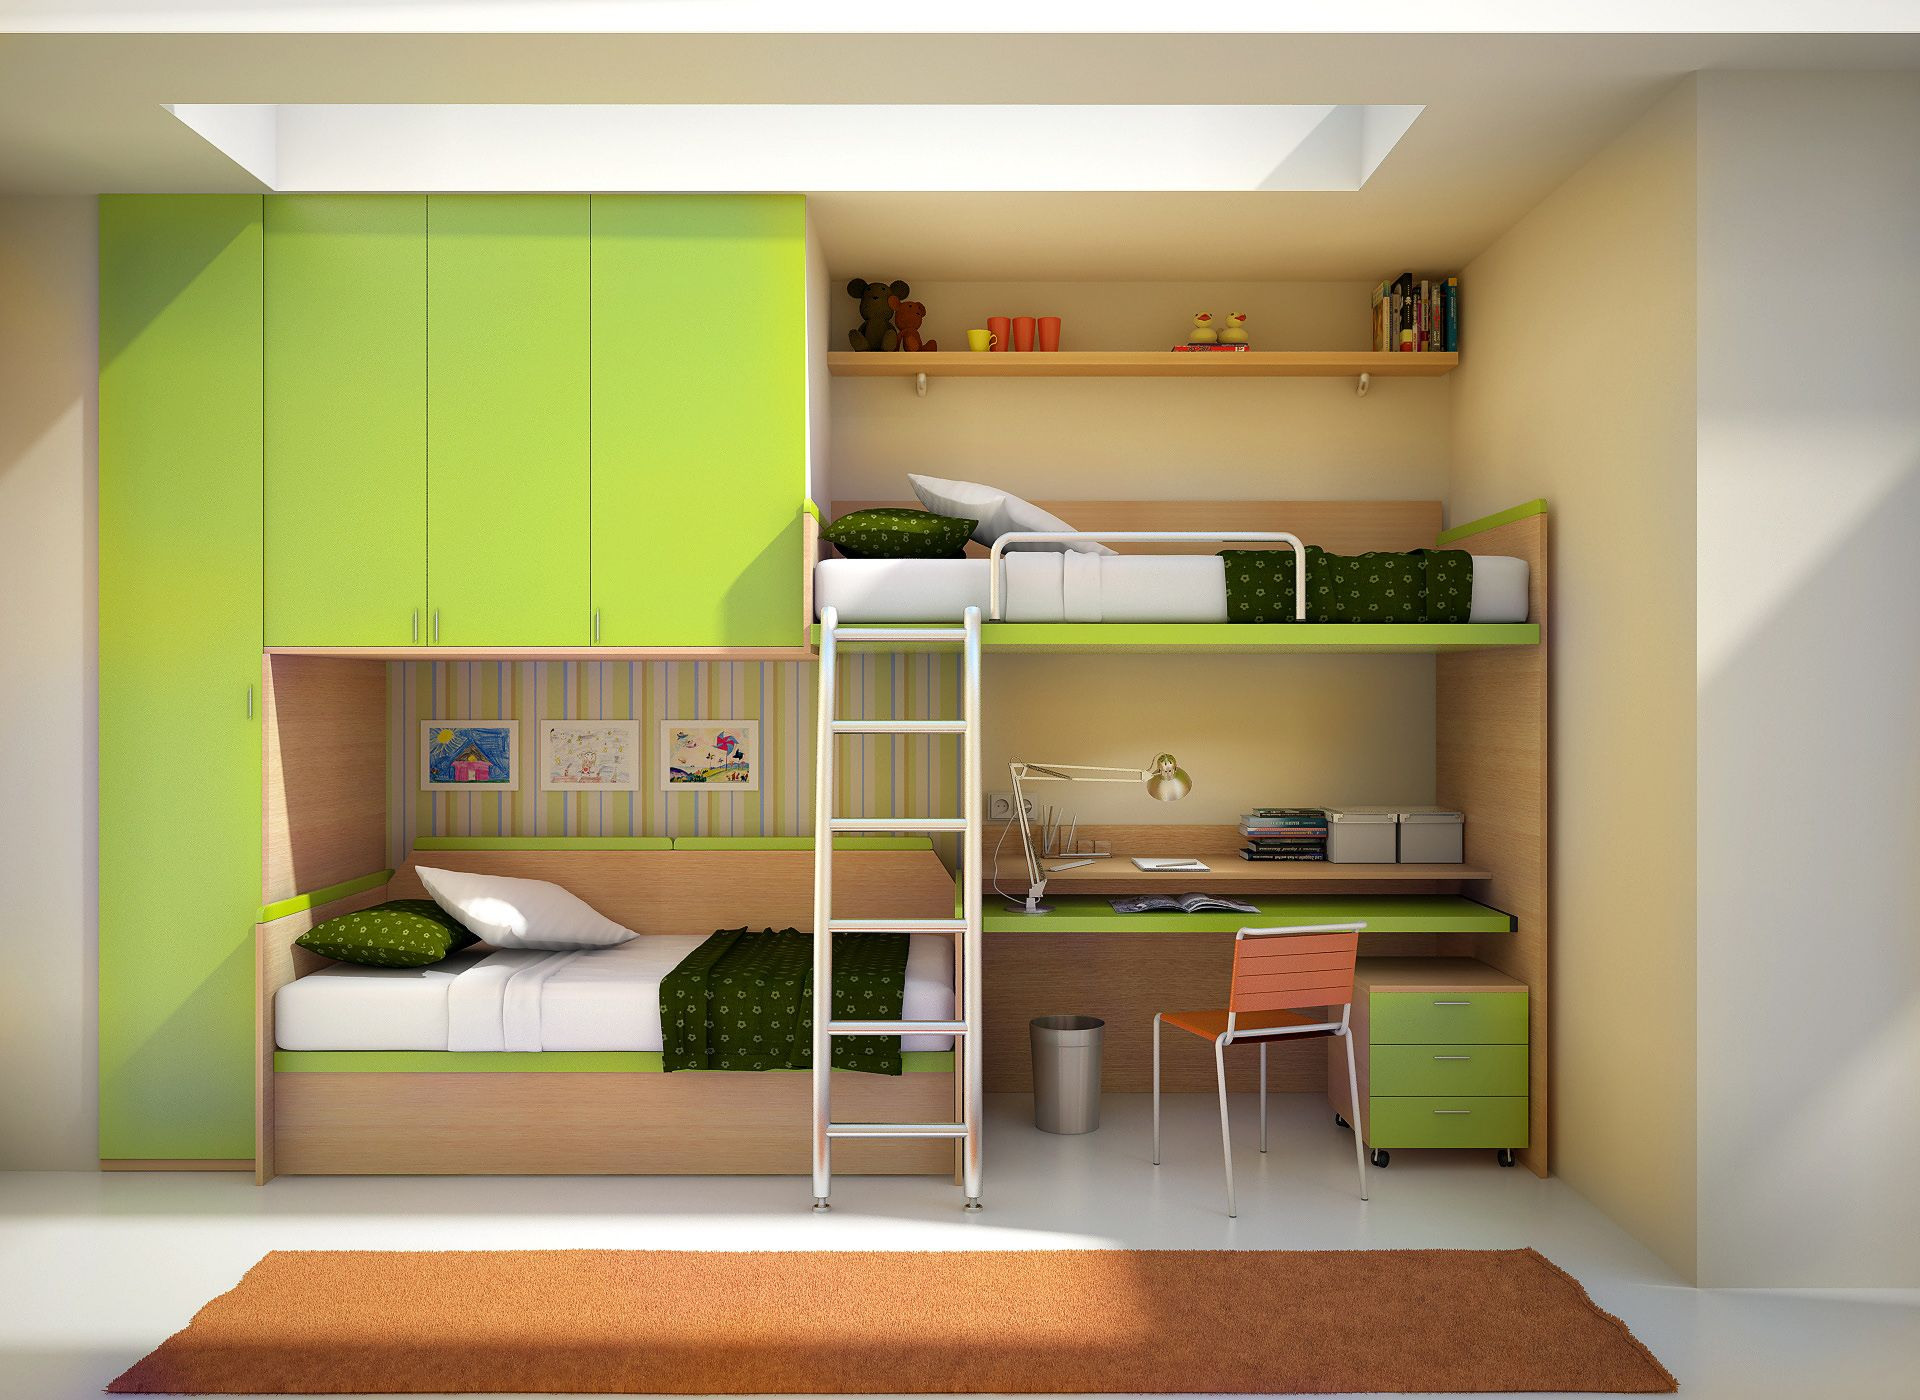 Cool bunk beds for 4 - Beliches Quarto Crian A Kids Bunk Beds3 4